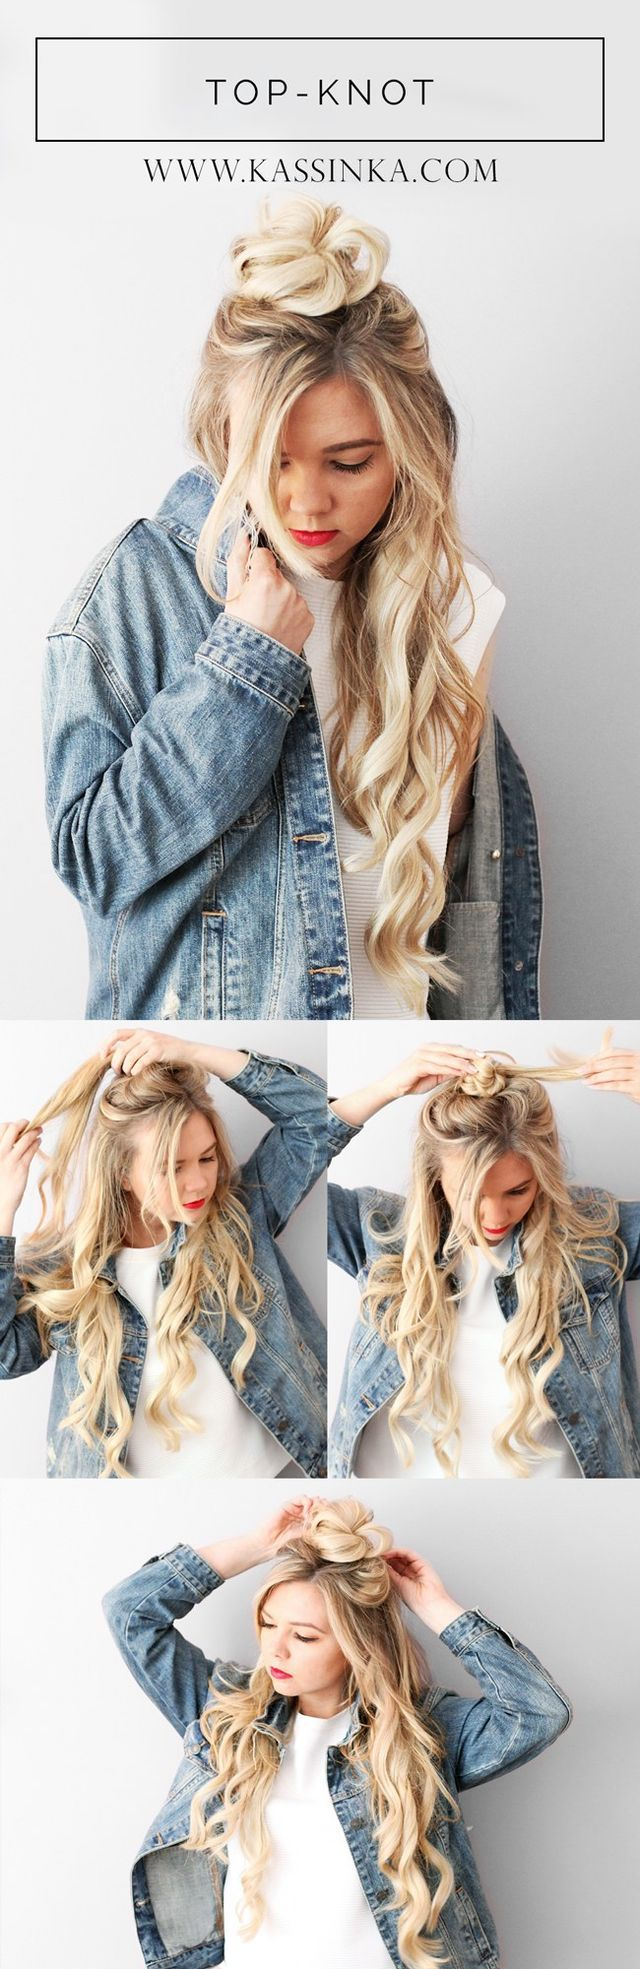 Don't want to commit to a full updo? Try half up and half down for a casual look. I created this hair tutorial to help you always feel your best & look amazing. Read the steps below and then let me kn